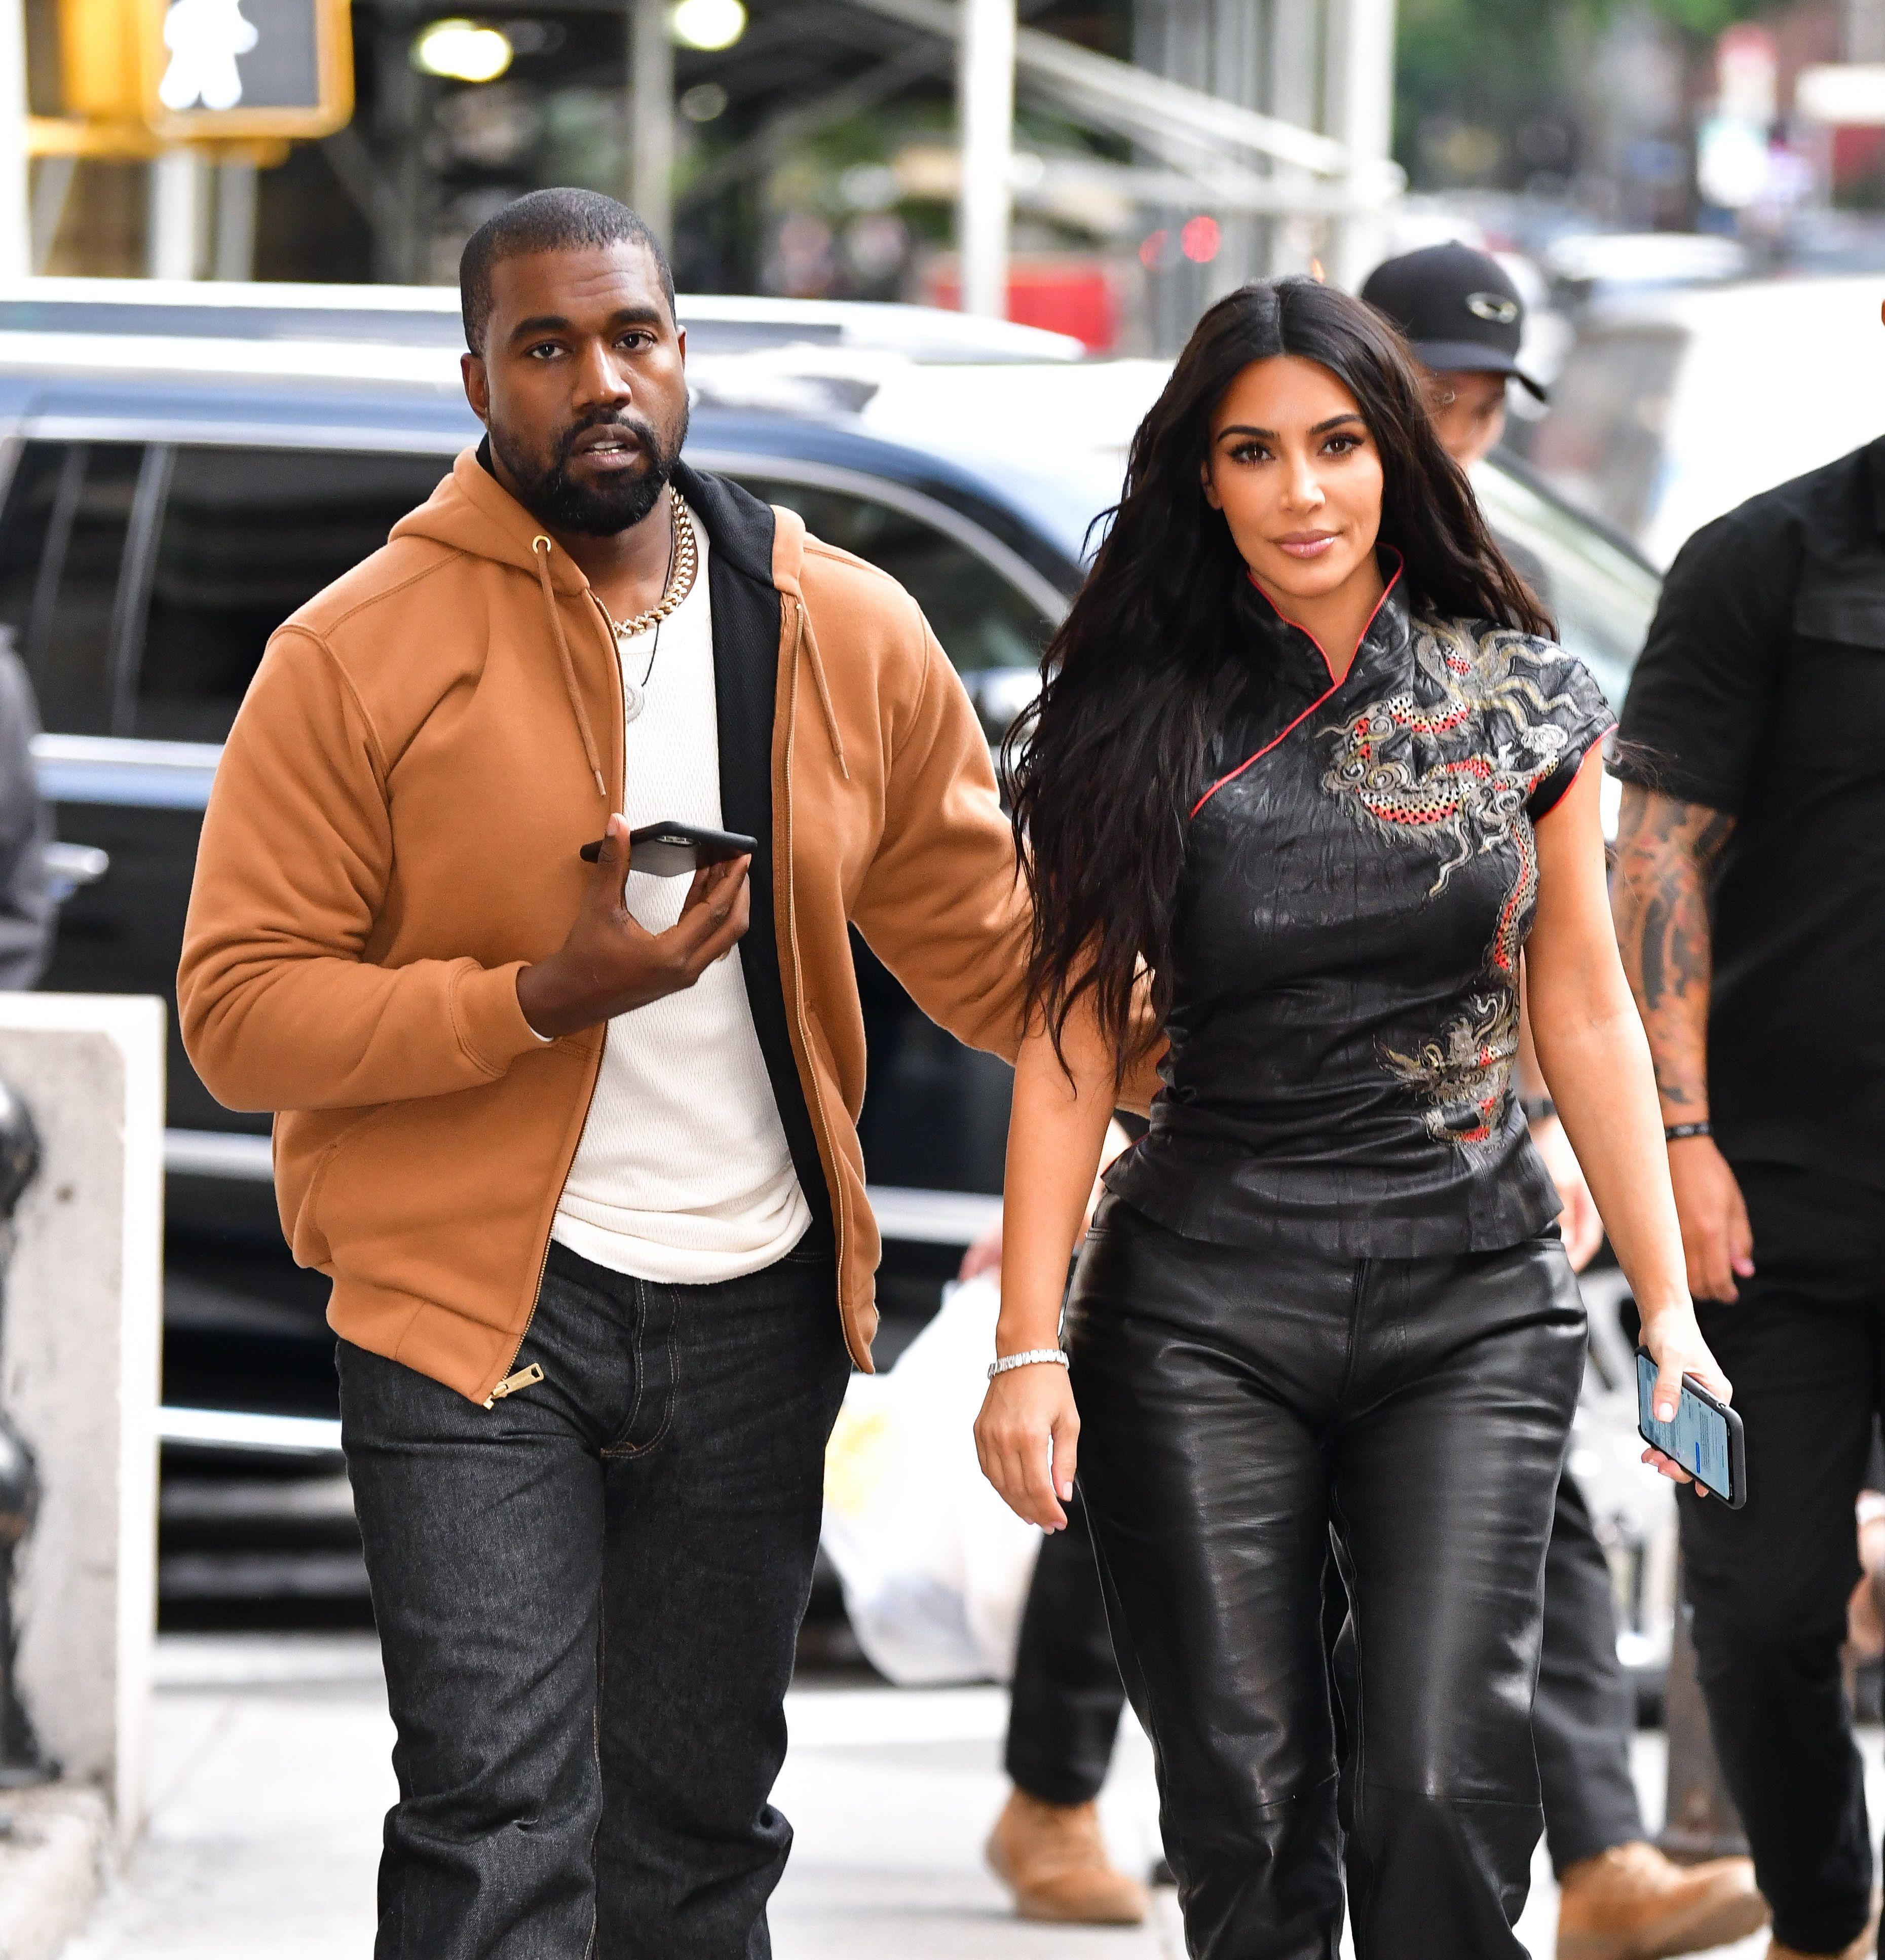 Kim Kardashian and her husband Kanye West / Getty Images